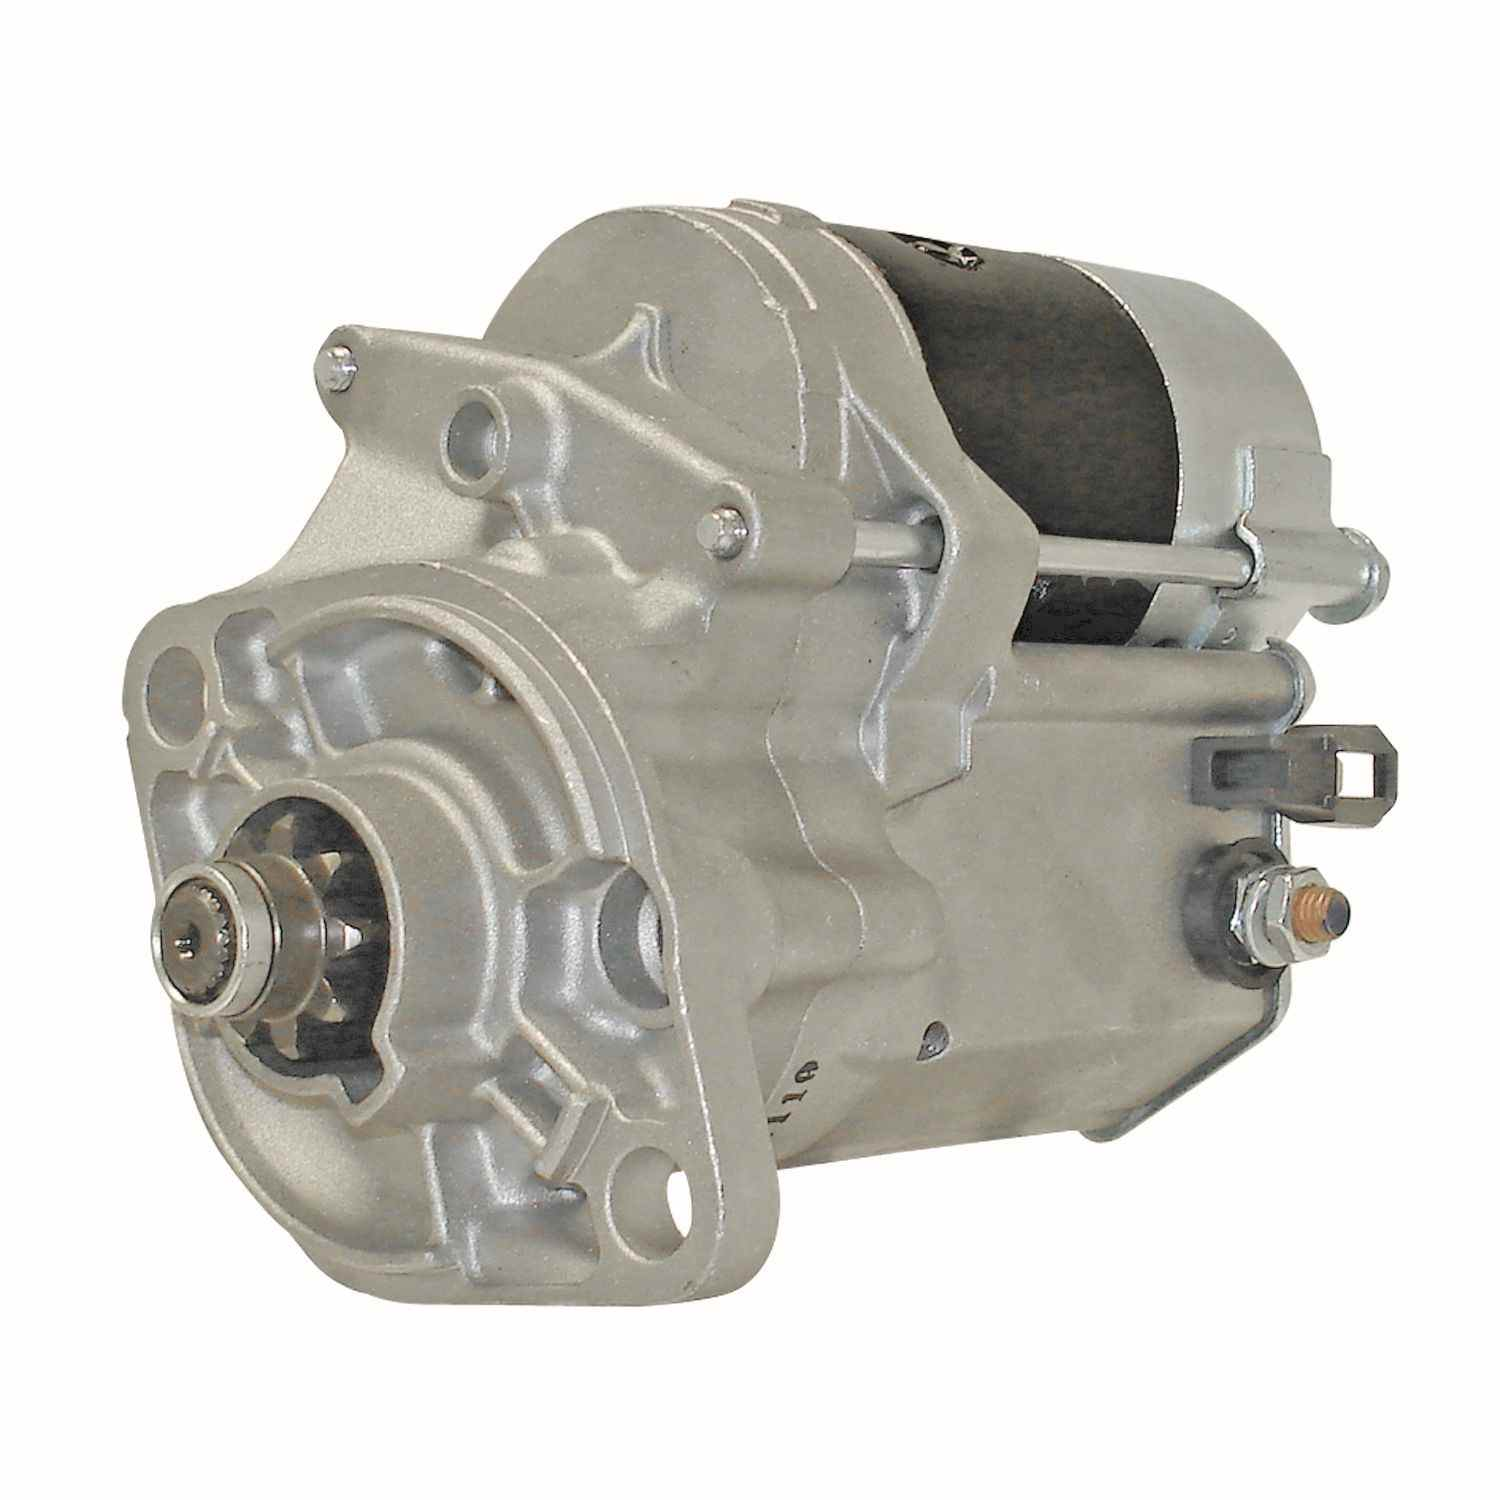 ACDELCO GOLD/PROFESSIONAL - Reman Starter Motor - DCC 336-1425